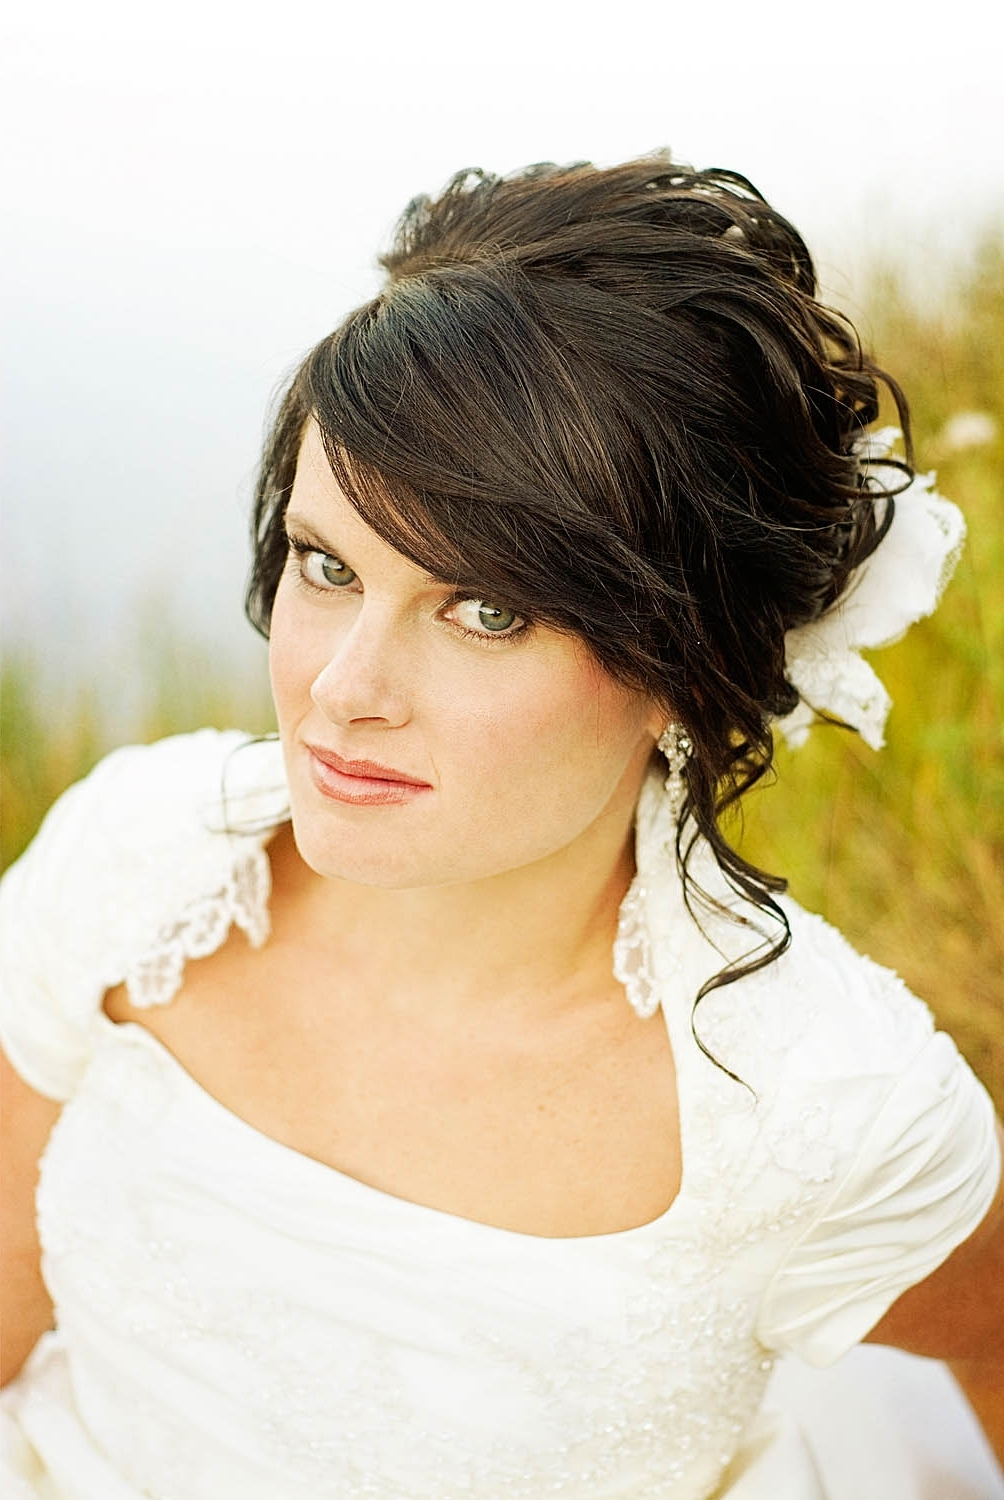 Top Hairstyles For Preferred Wedding Hairstyles For Short Hair With Fringe (View 9 of 15)